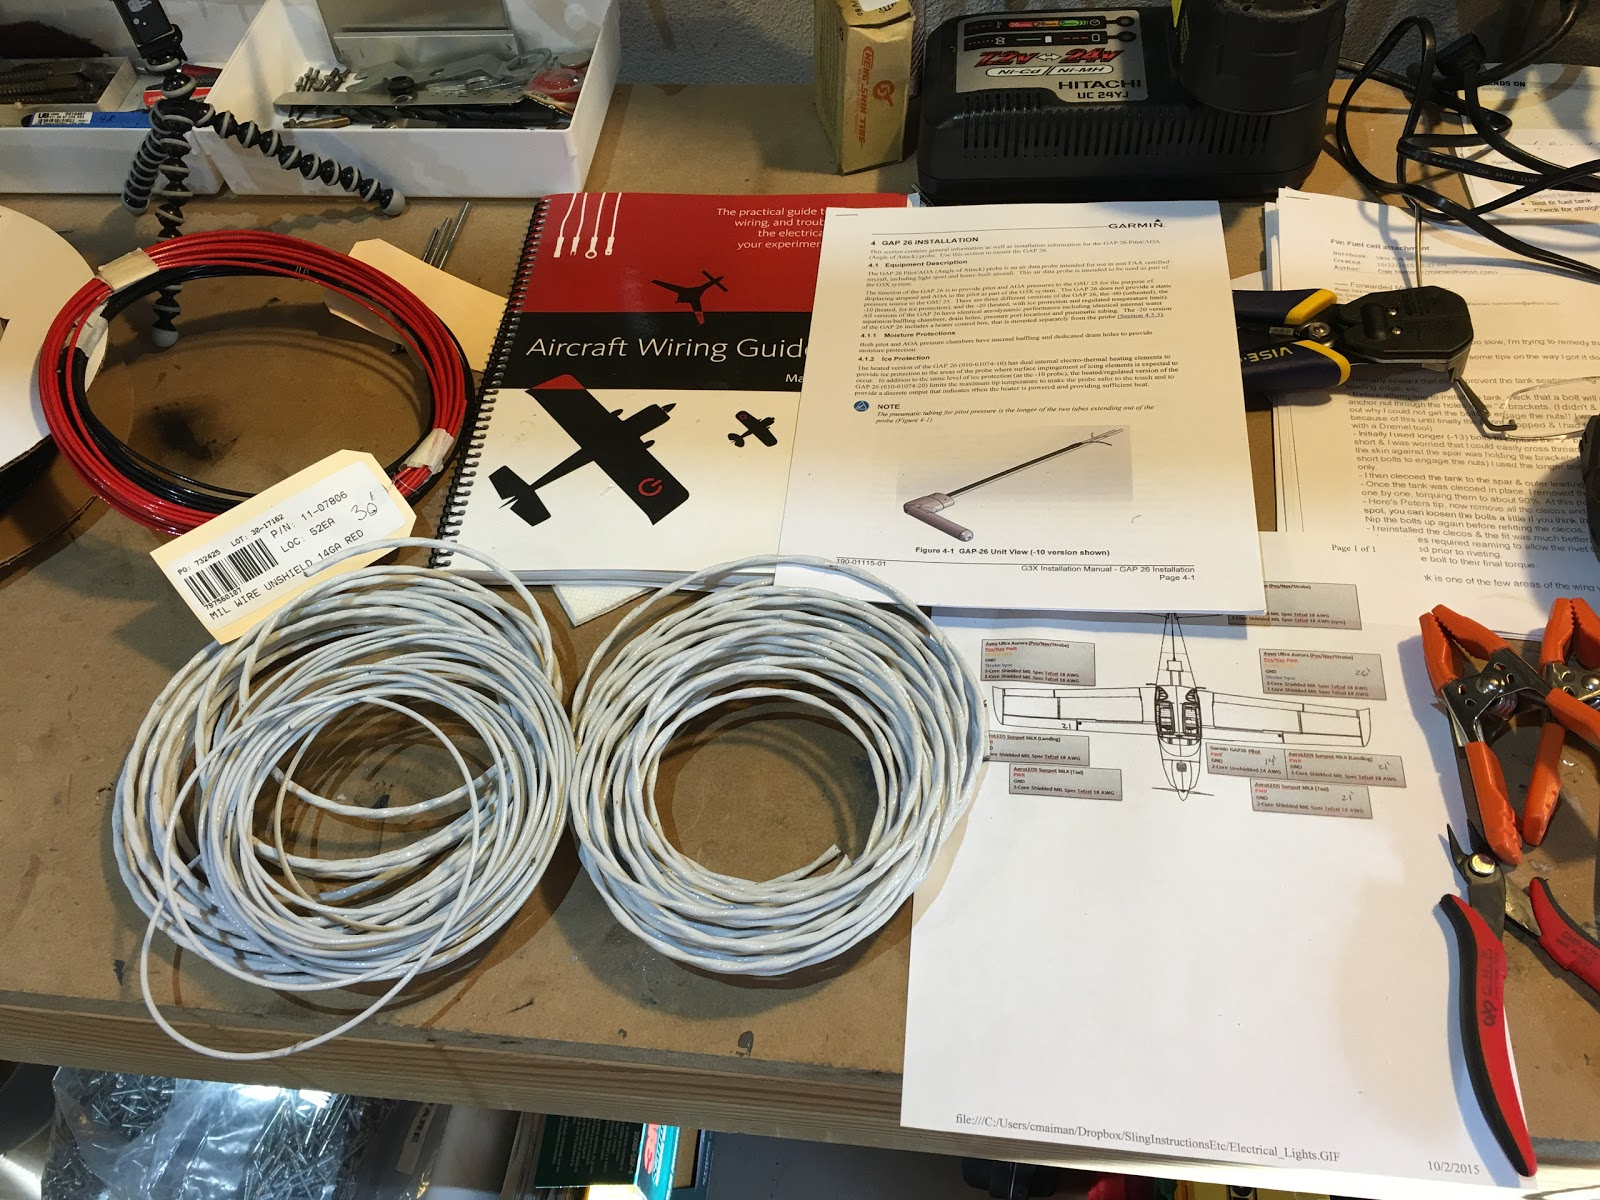 Craigs Sling 4 Build Log Wiring Harness Sleeves Assembling The Wires For Printed Out Garmin Gap 26 Pitot Installation Instructions And Read Them Over Red Black Wire On Left